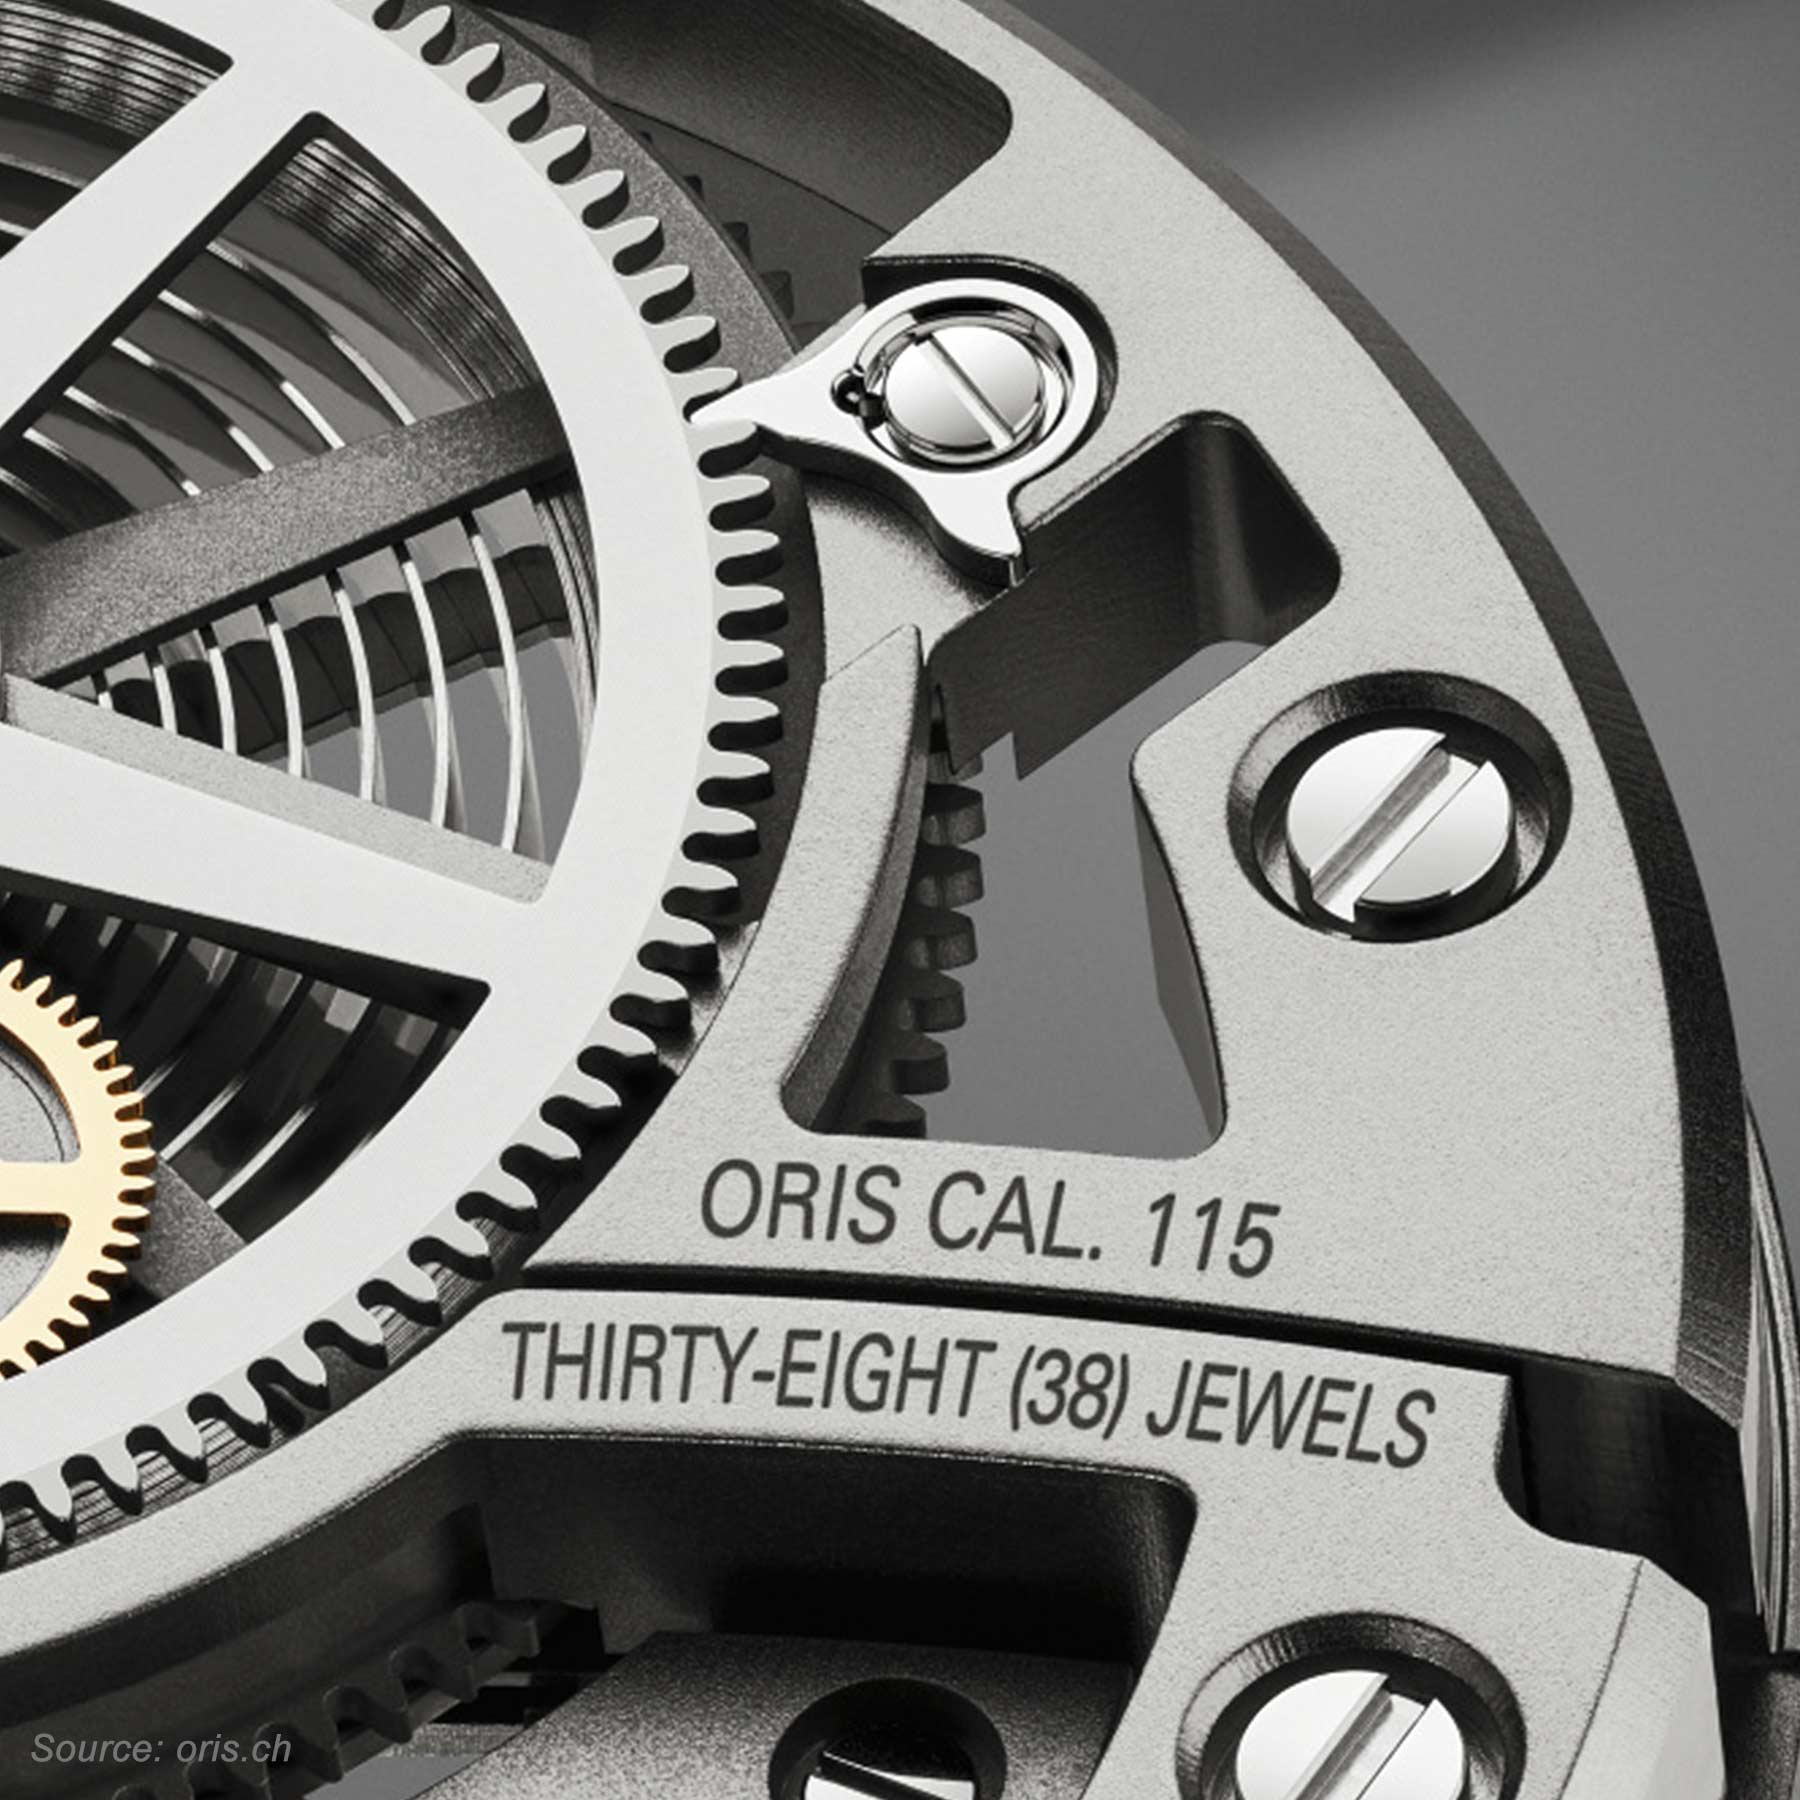 Oris Caliber 115 38 Jewels